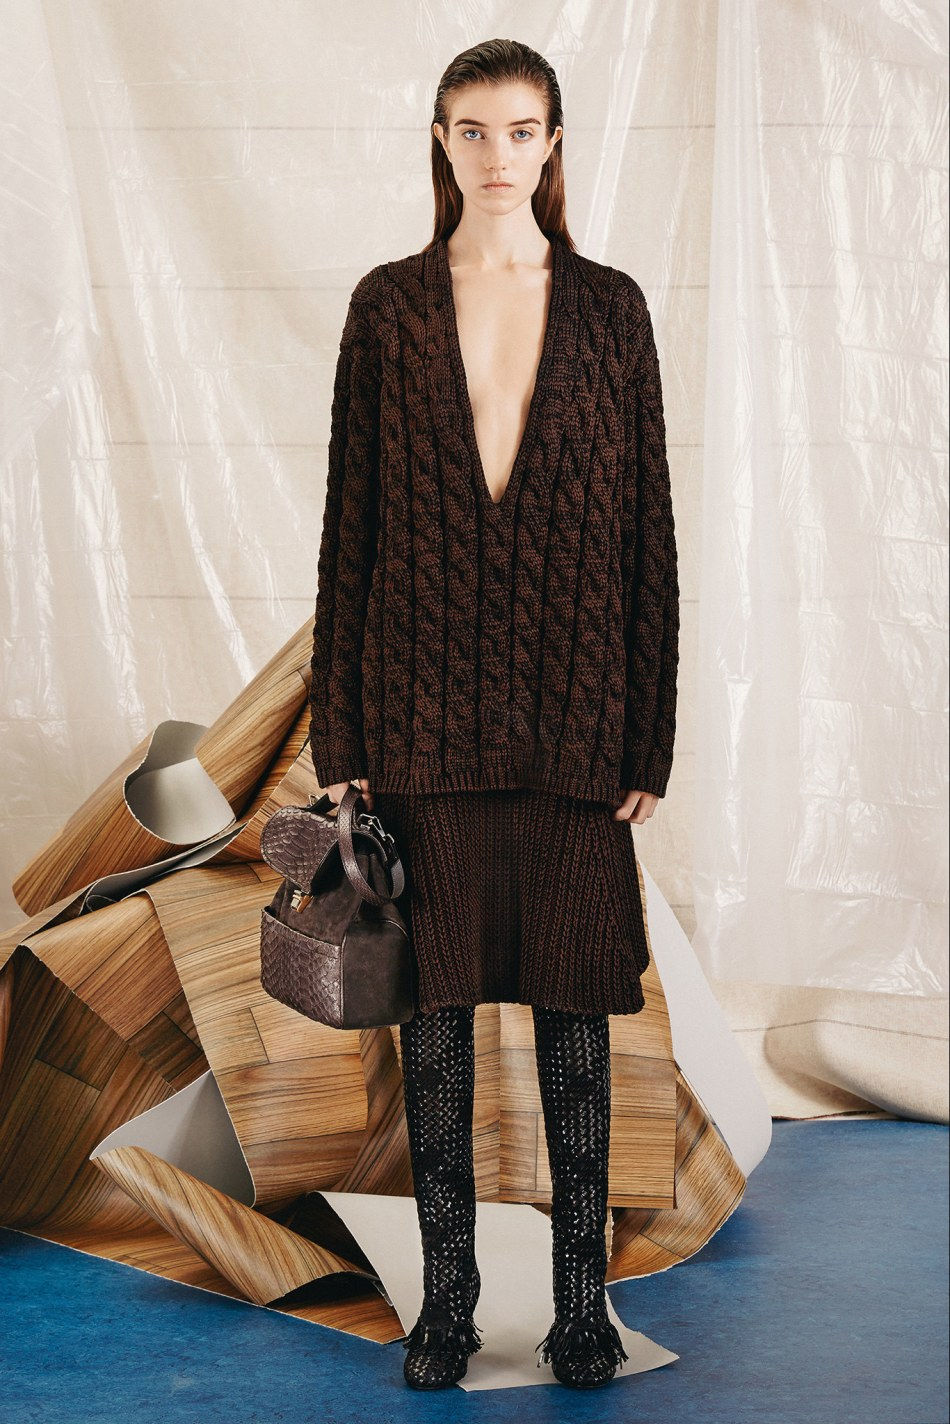 The cable-knit, Proenza Schouler